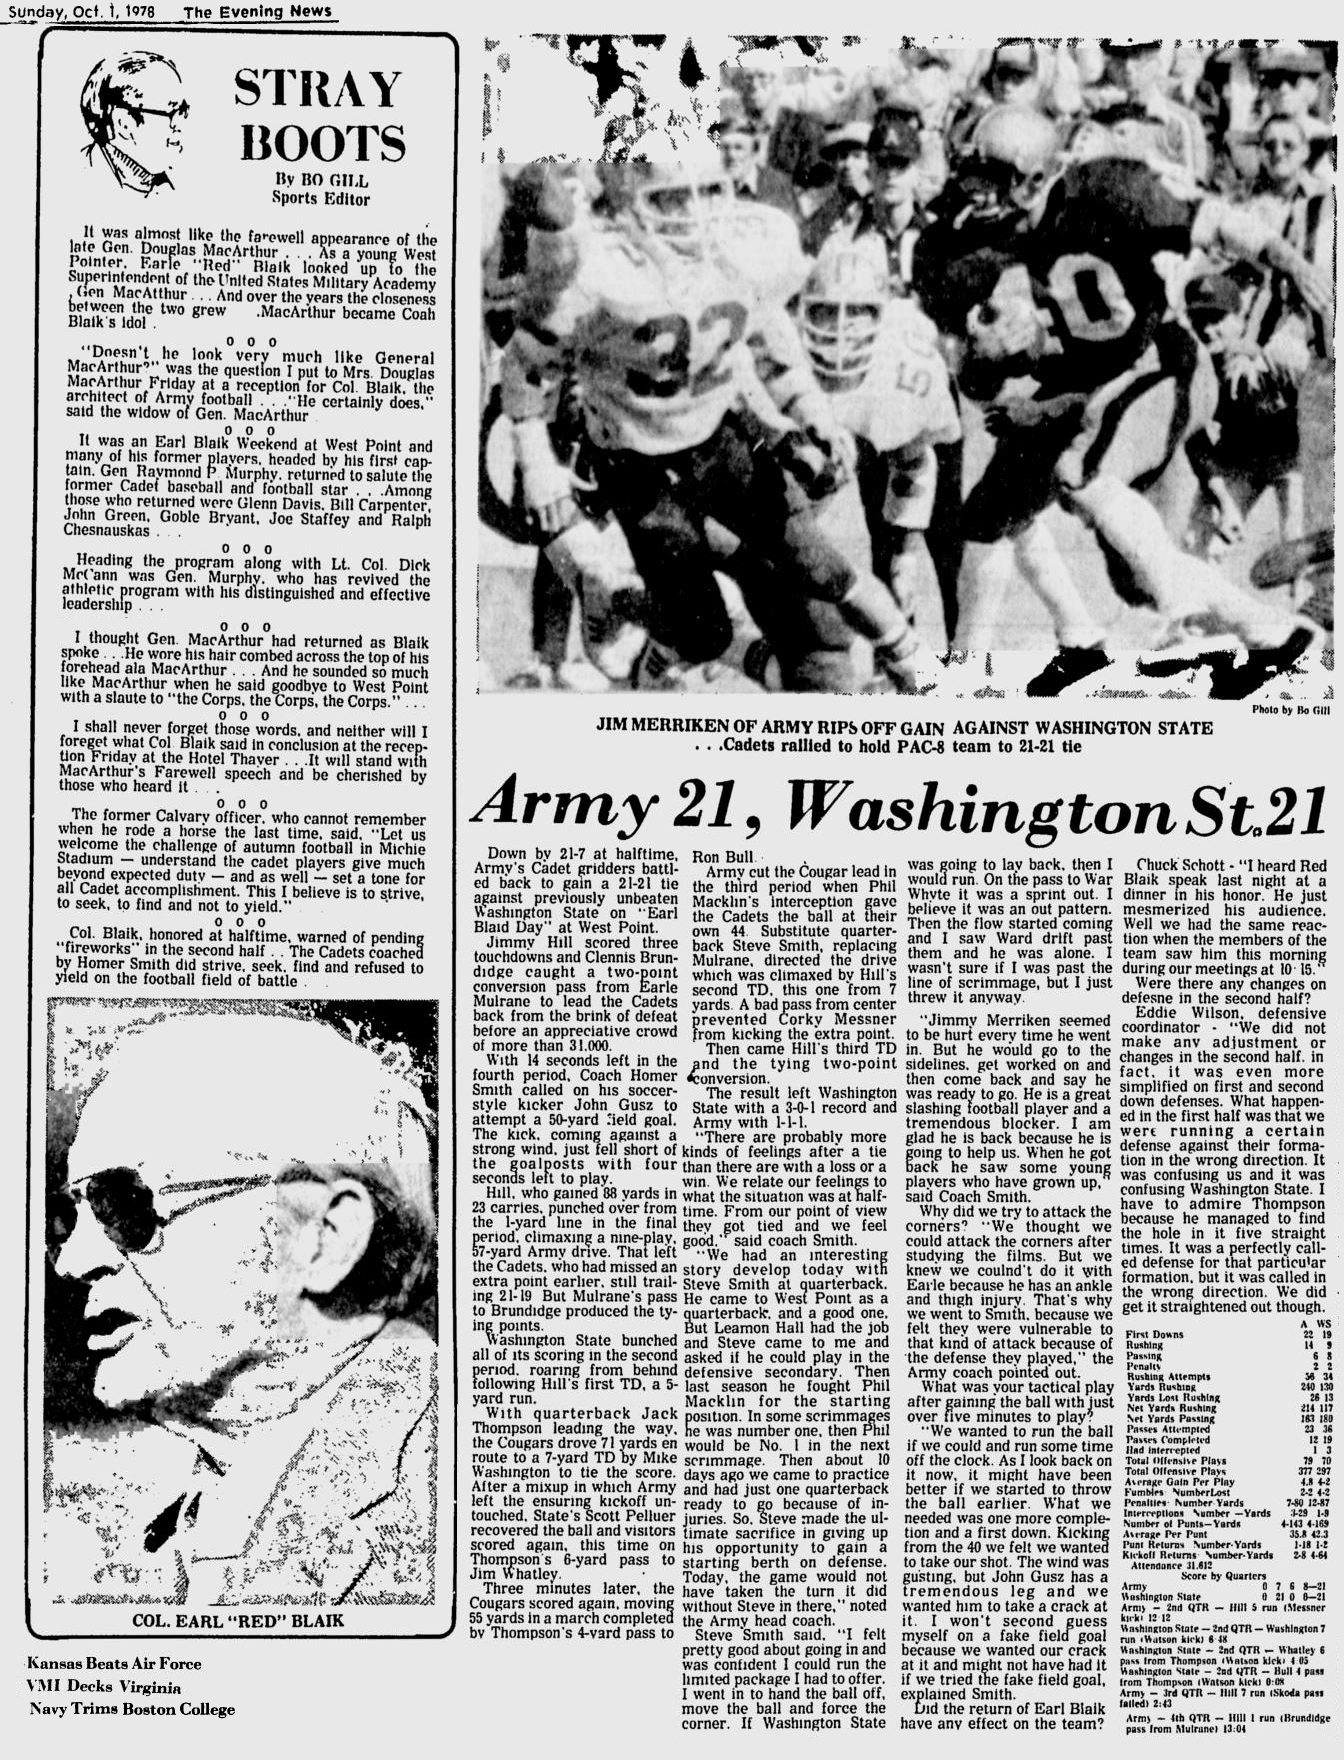 ArmyFB_1978_vsWashingtonState_EveningNews_Oct11978